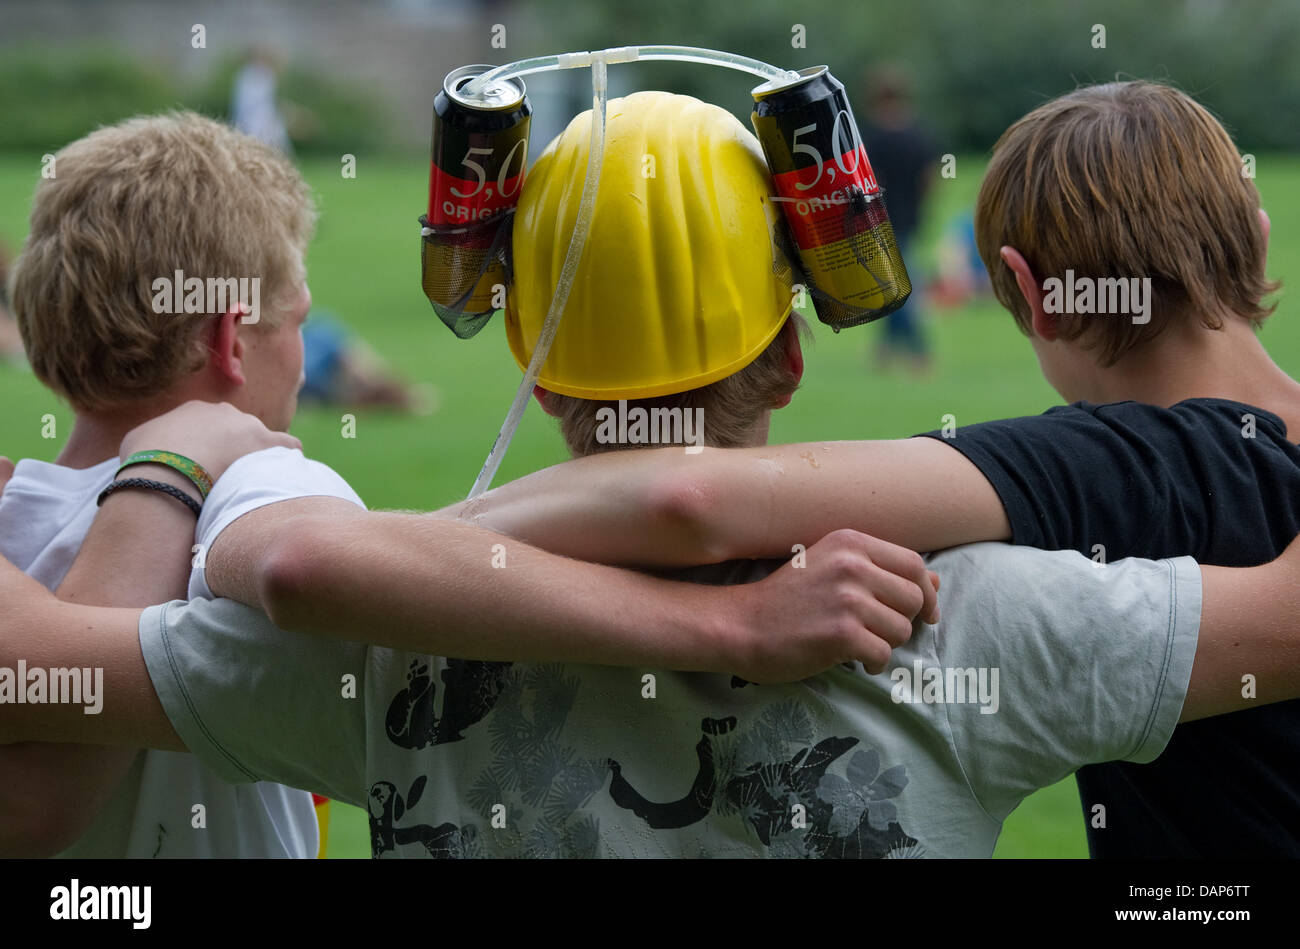 A young man with a beer can helmet is surrounded by his friends at the Neckarwiesen in Heidelberg, Germany, 27 July - Stock Image